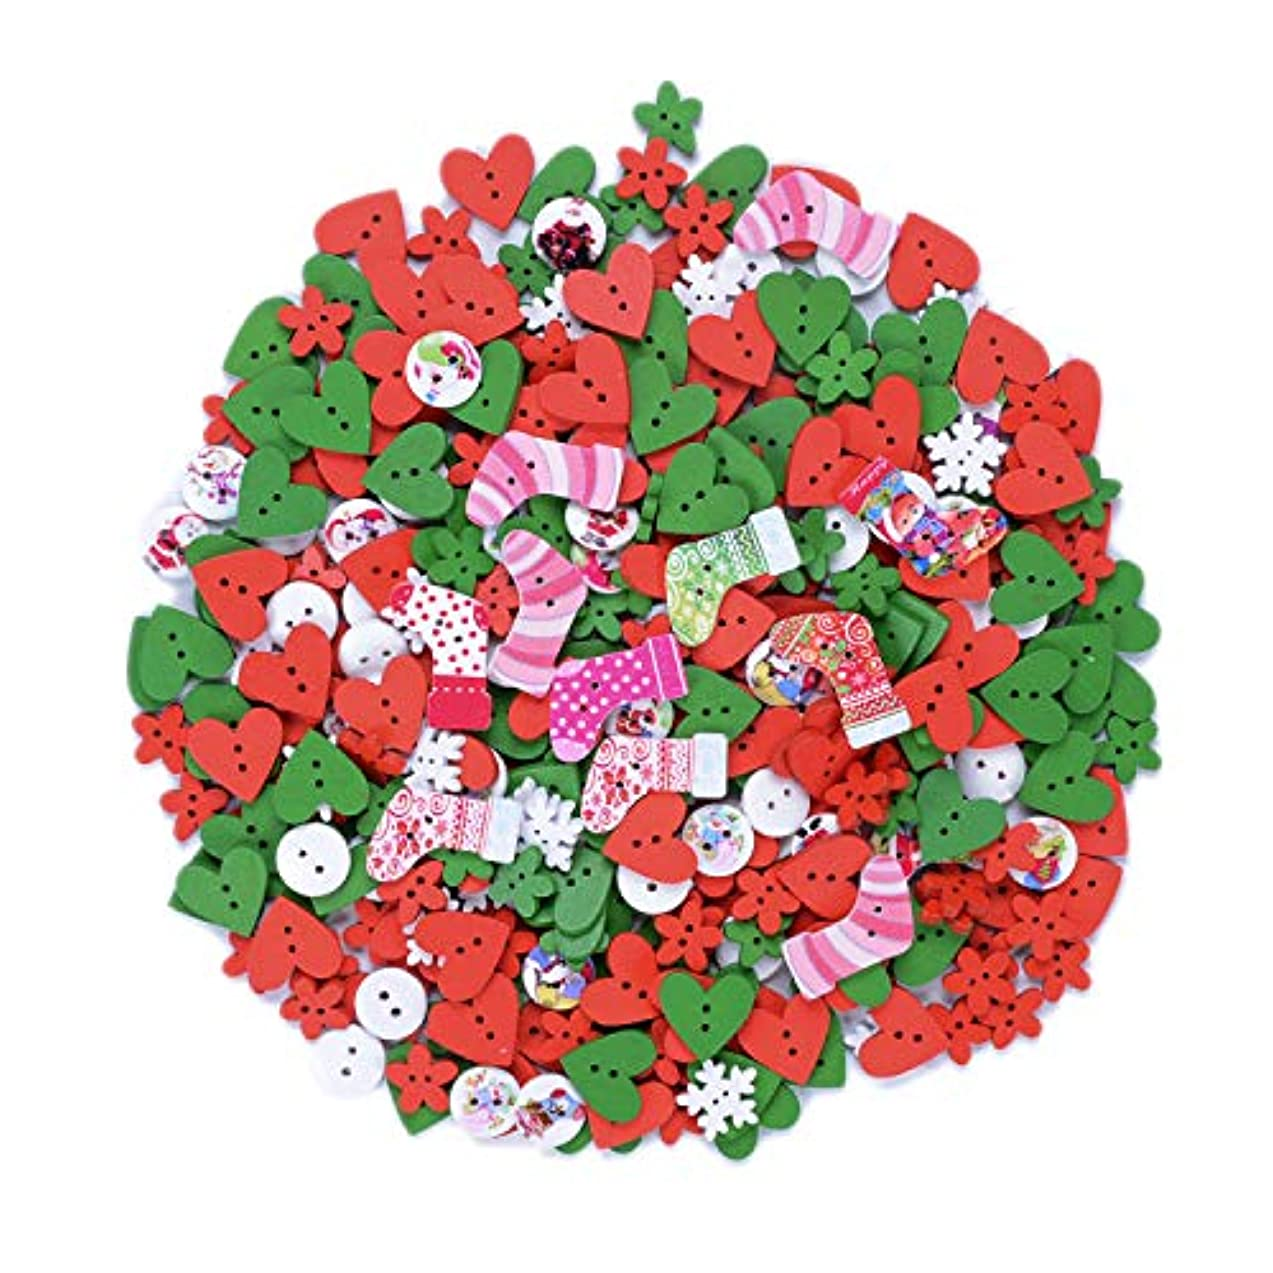 eborder 450 Pieces Christmas Wooden Buttons Colorful Craft Sewing Button for DIY Craft Supplies